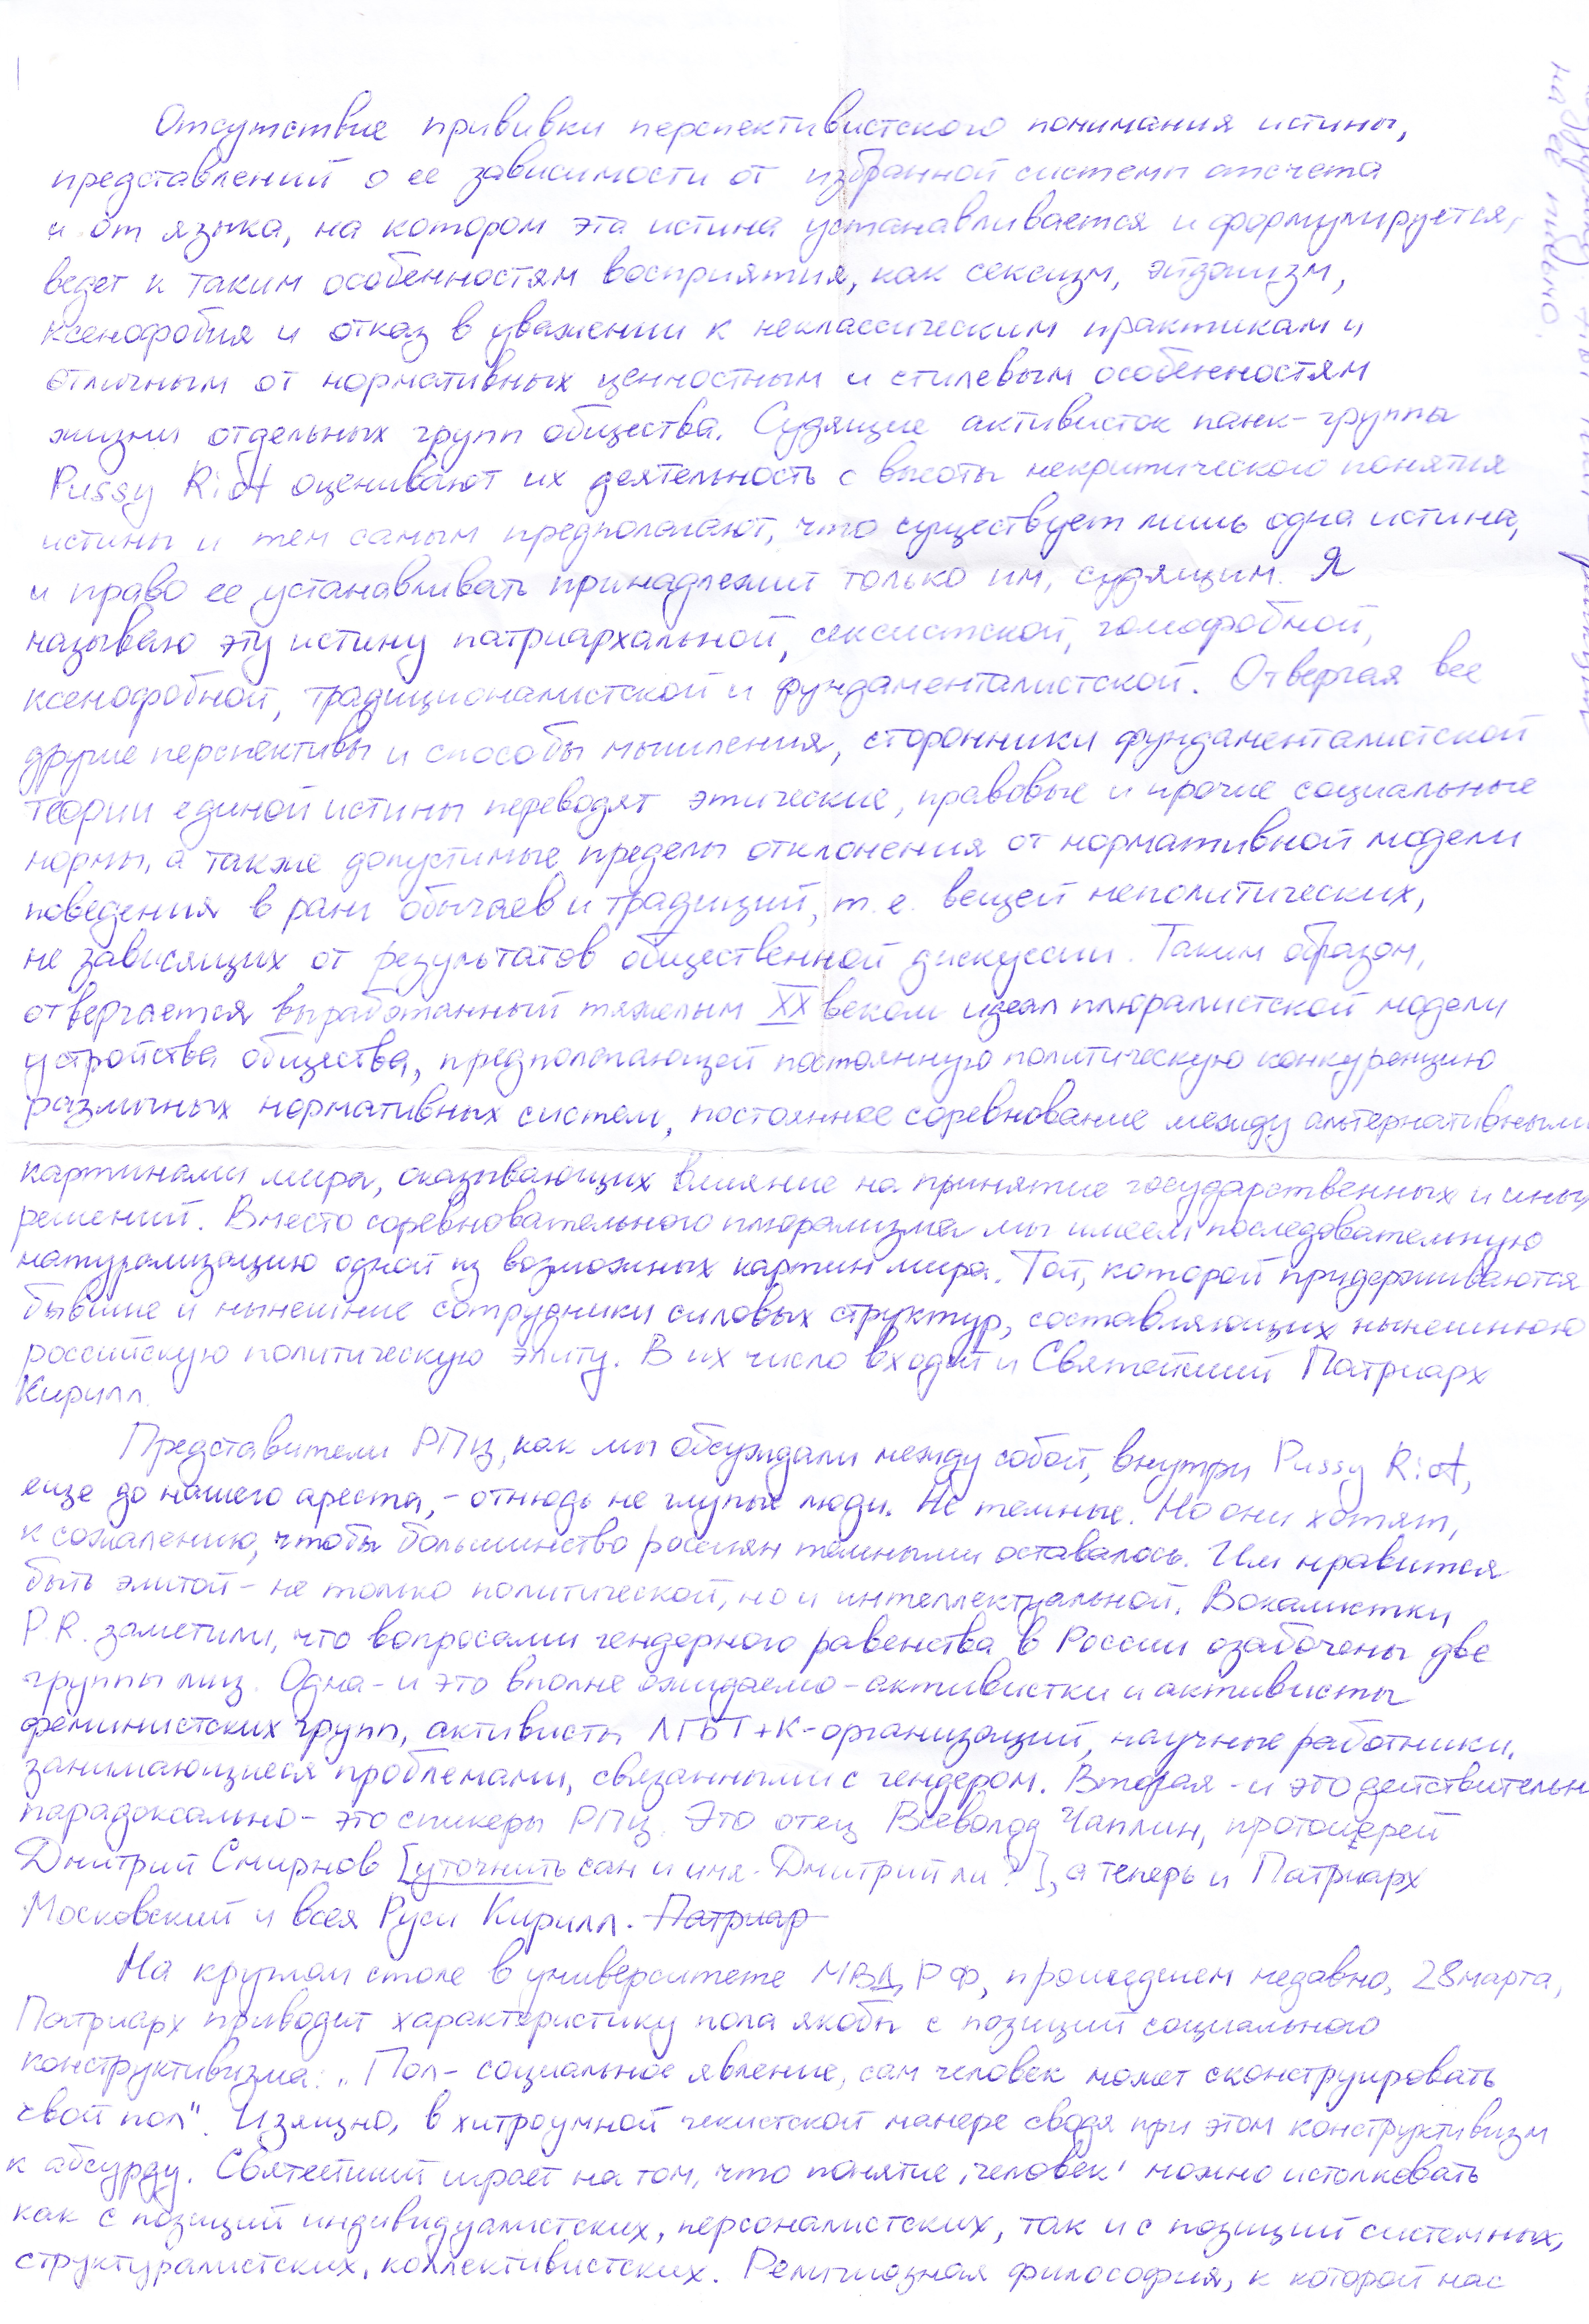 Manifesto by N. Tolokonnikova from 05/04/2012 - page 1